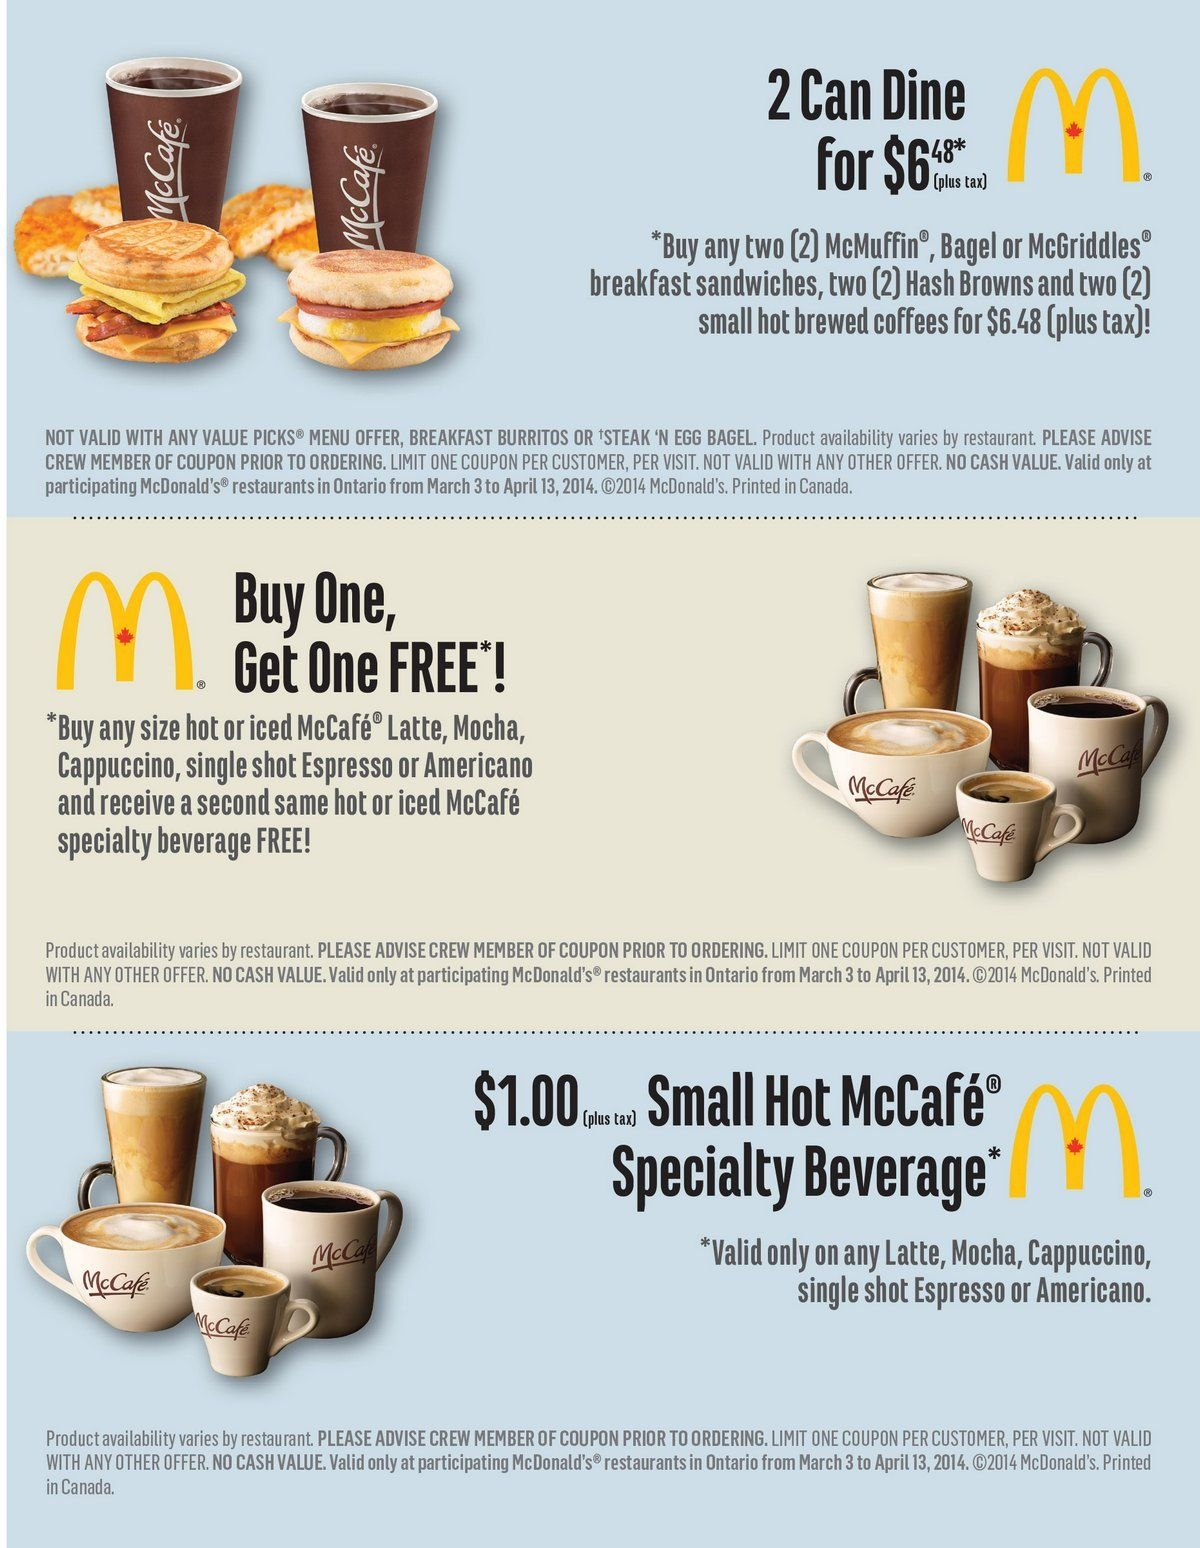 Mcdonald's Coupons March 3 - April 13 2014 Toronto | Disney - Free Mcdonalds Smoothie Printable Coupon